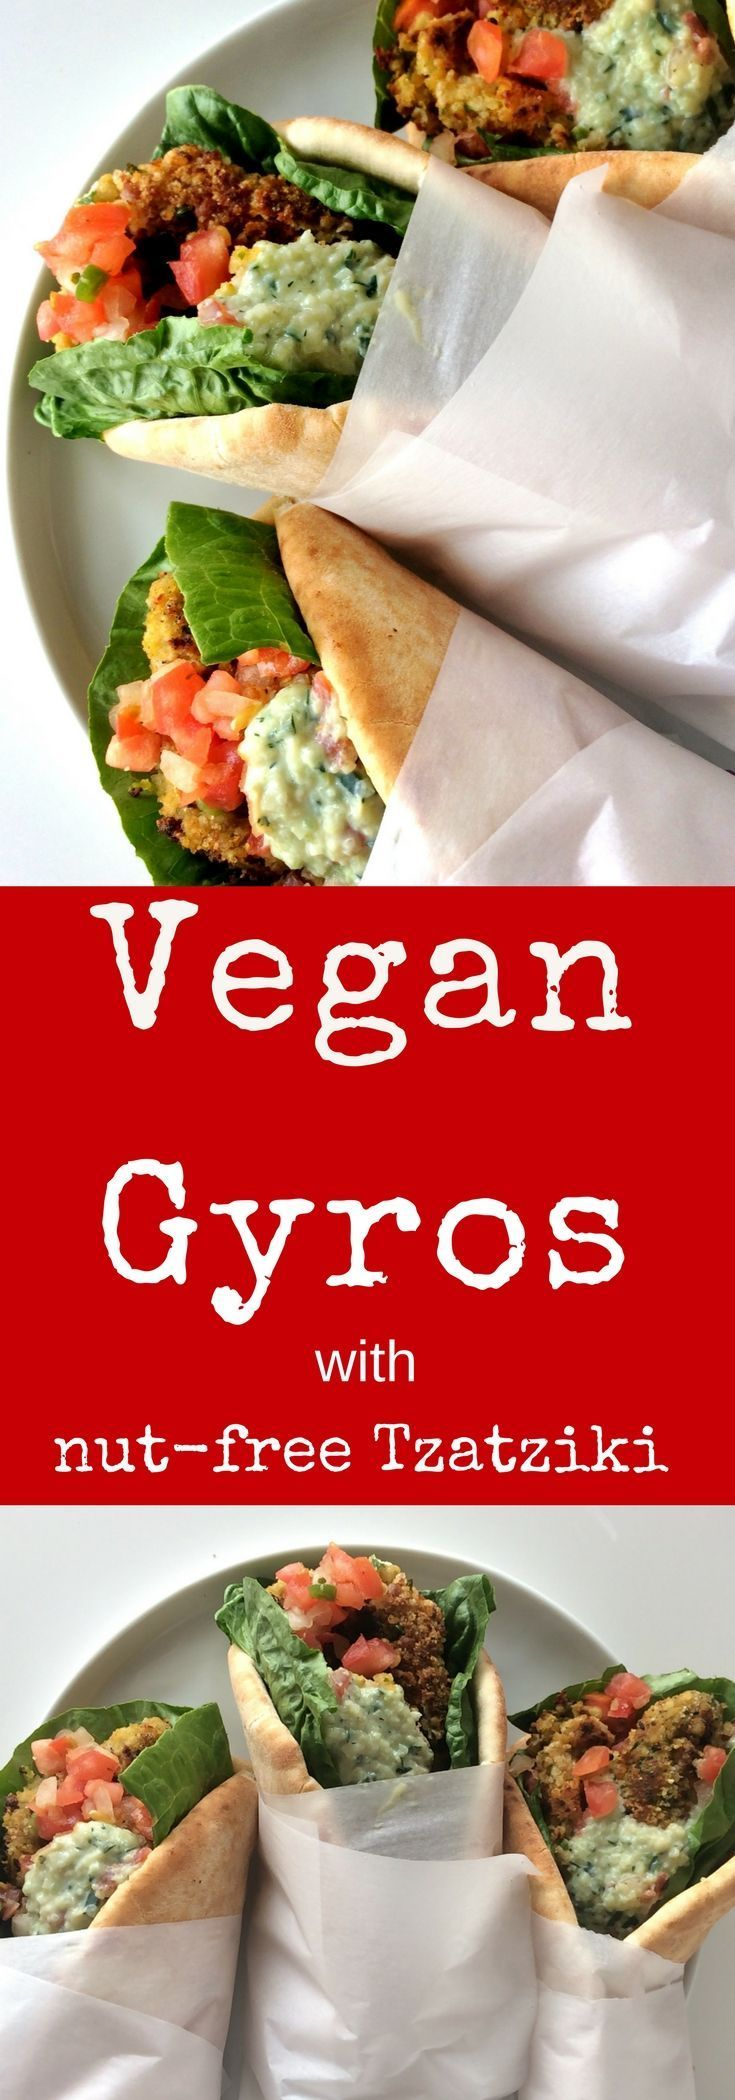 Easy #vegan gyros made with seasoned chickpea falafels, stuffed into warm pitas and topped with nut free tzatziki sauce. A simple, tasty lunch or weeknight dinner.